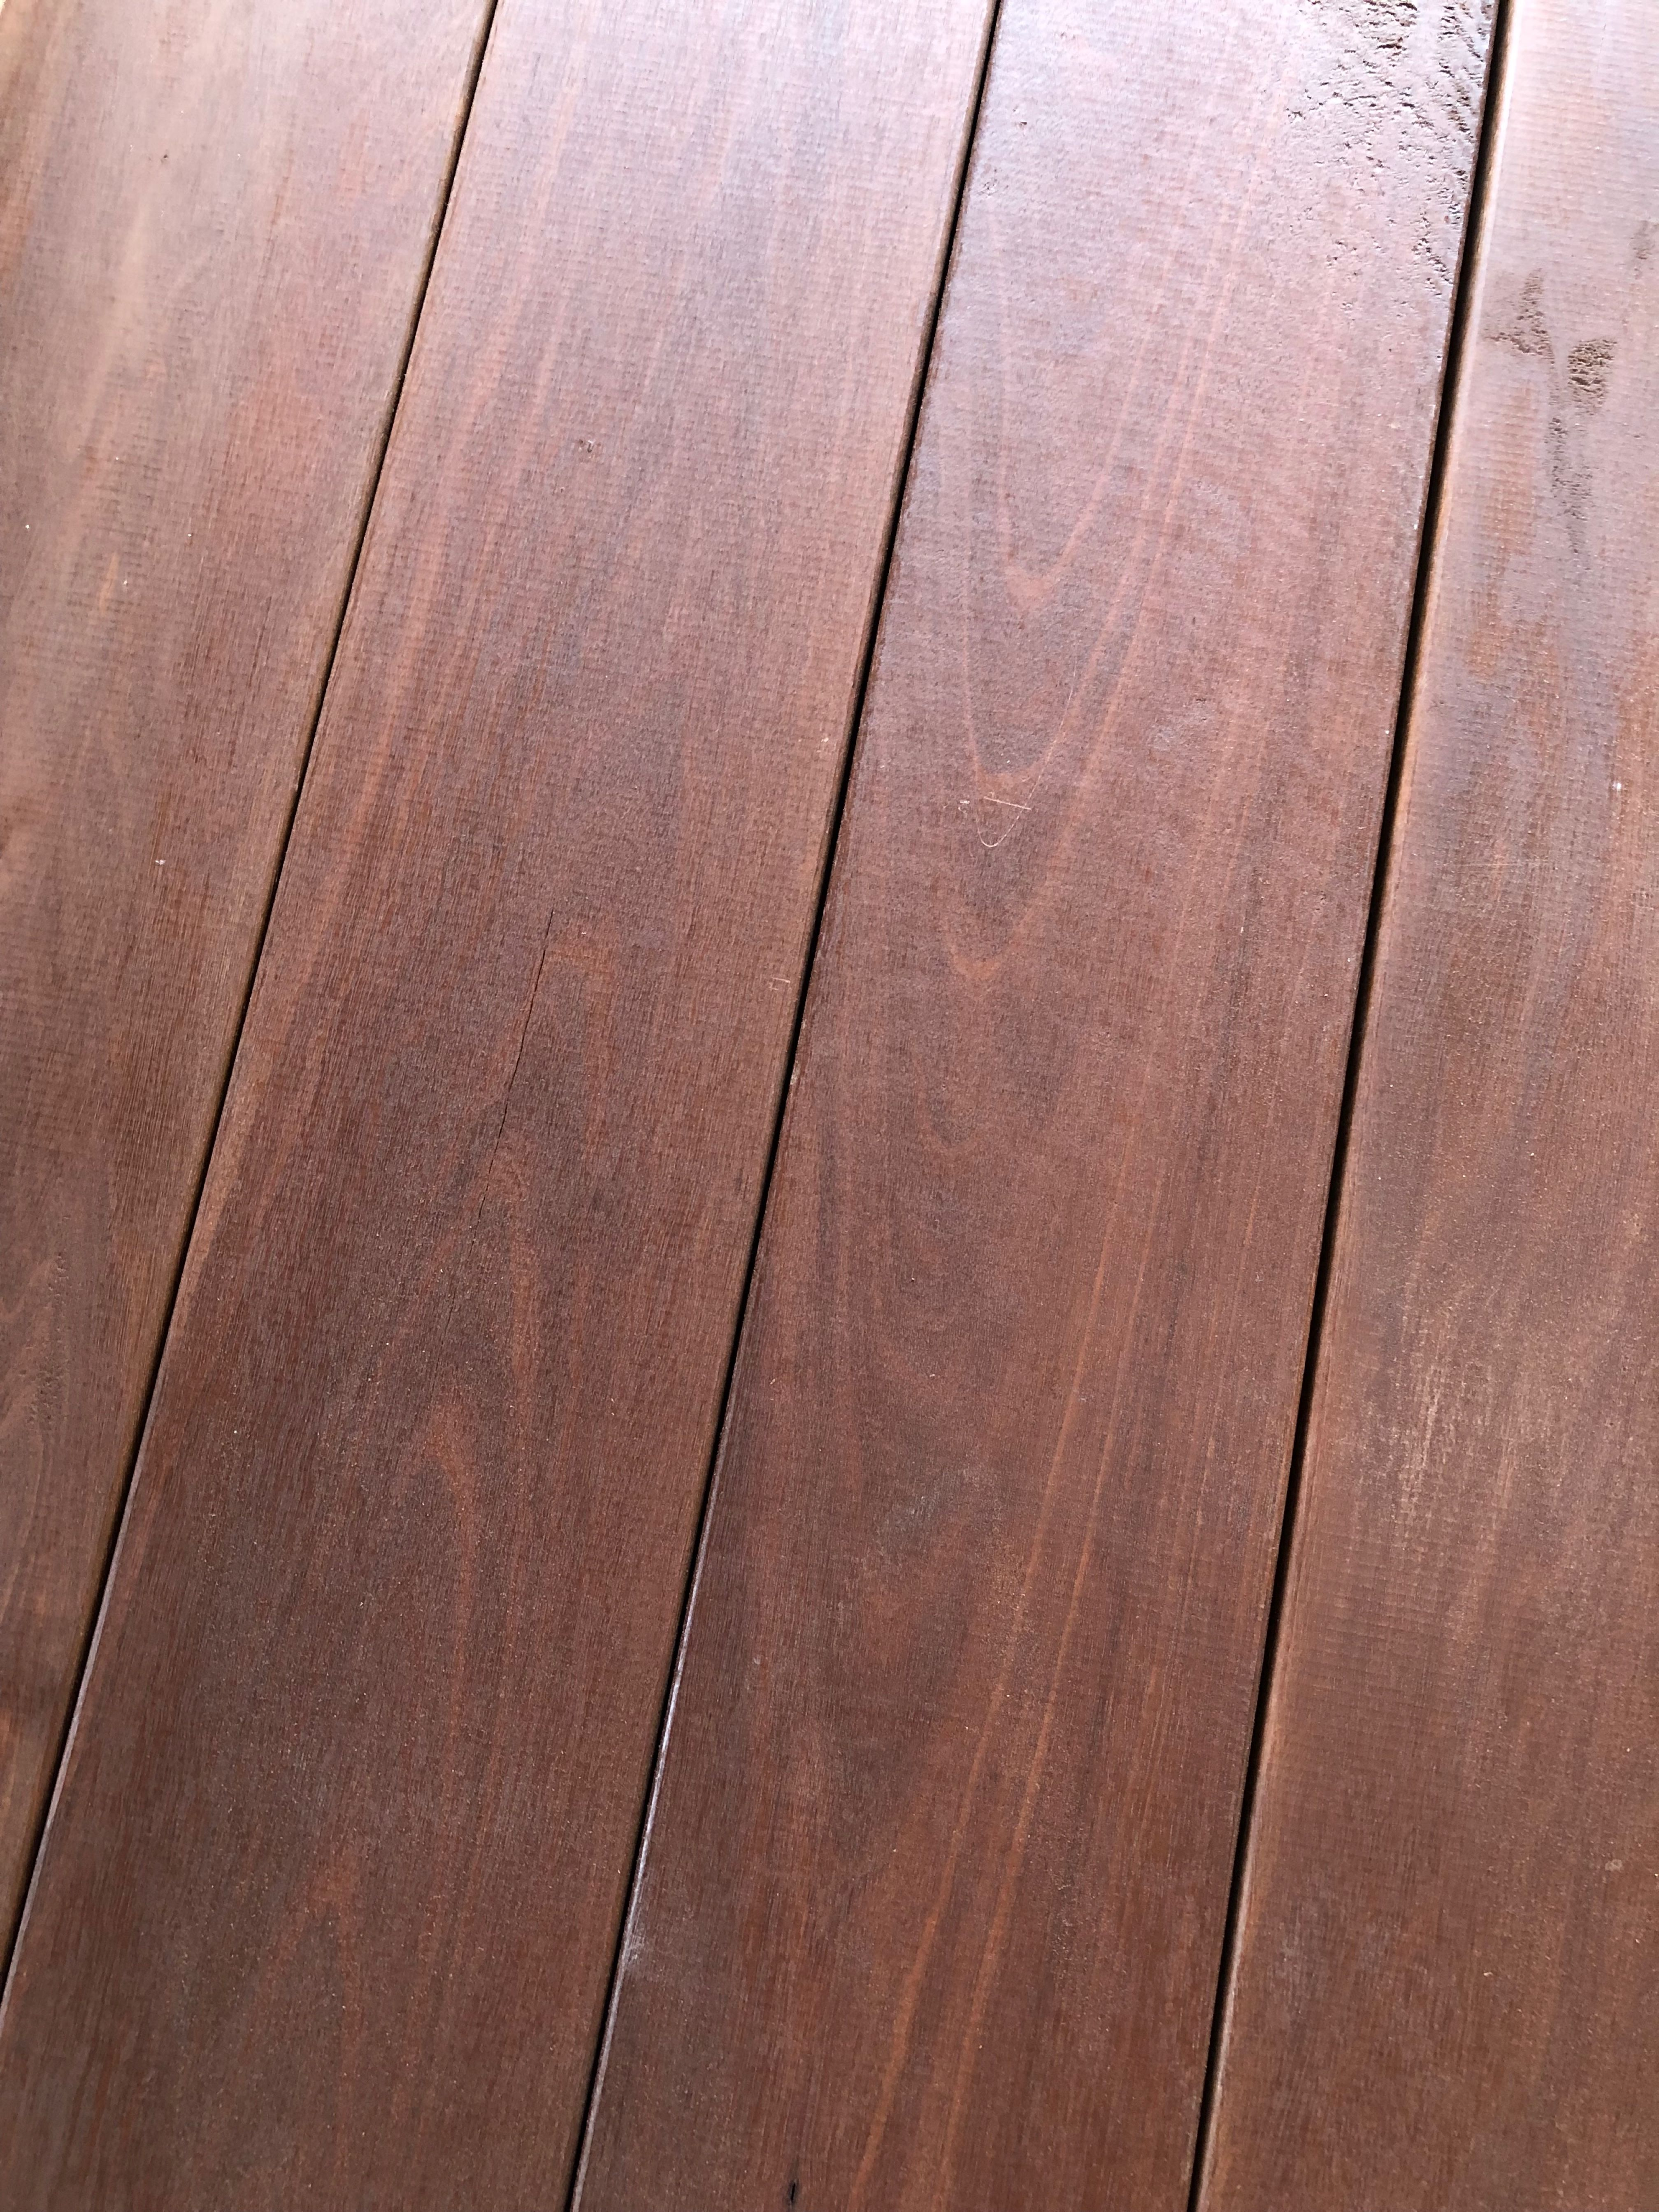 5 4 215 6 Red Meranti Mahogany Decking Is One Of The Most